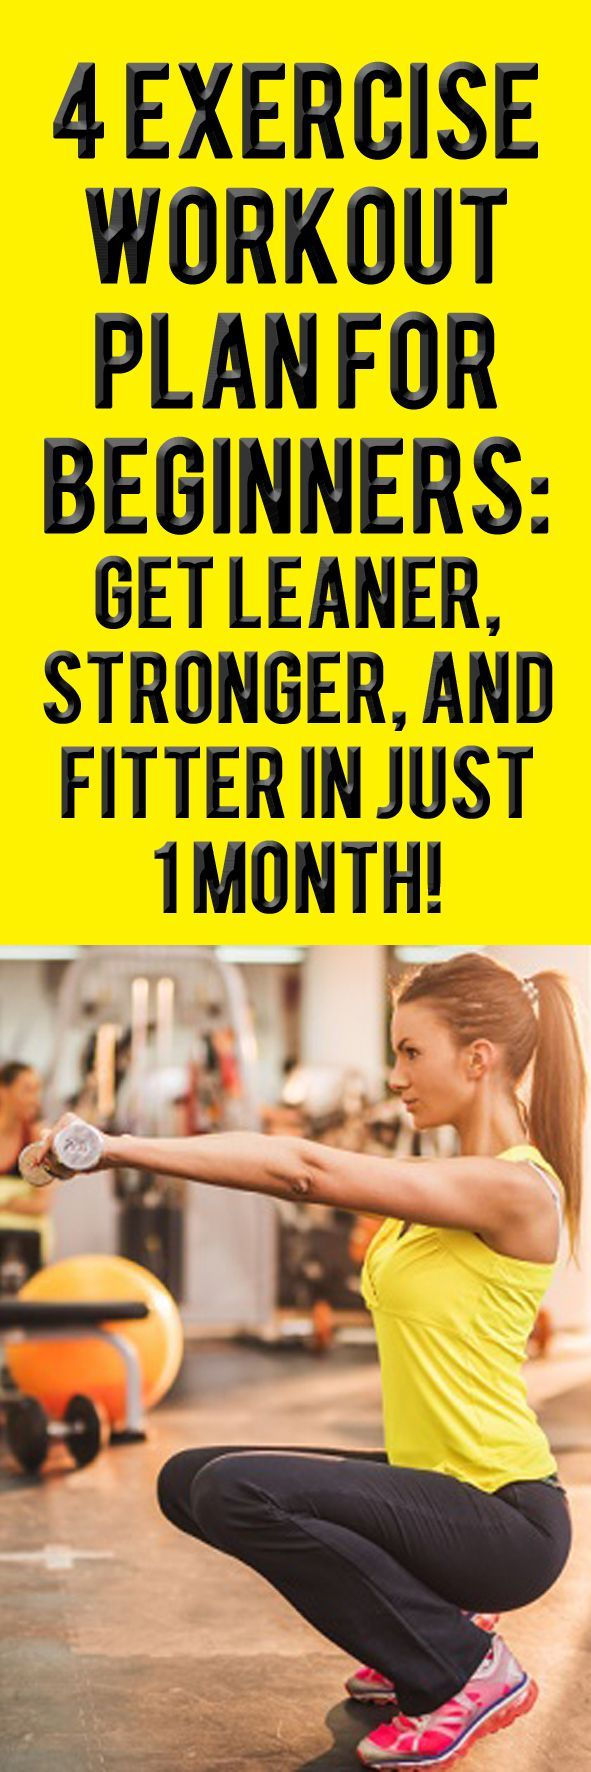 4 EXERCISE WORKOUT  PLAN FOR BEGINNERS: GET LEANER, STRONGER, AND FITTER IN JUST  1 MONTH! #fitness #workoutplan #exercise #fitnesschallenge #workout